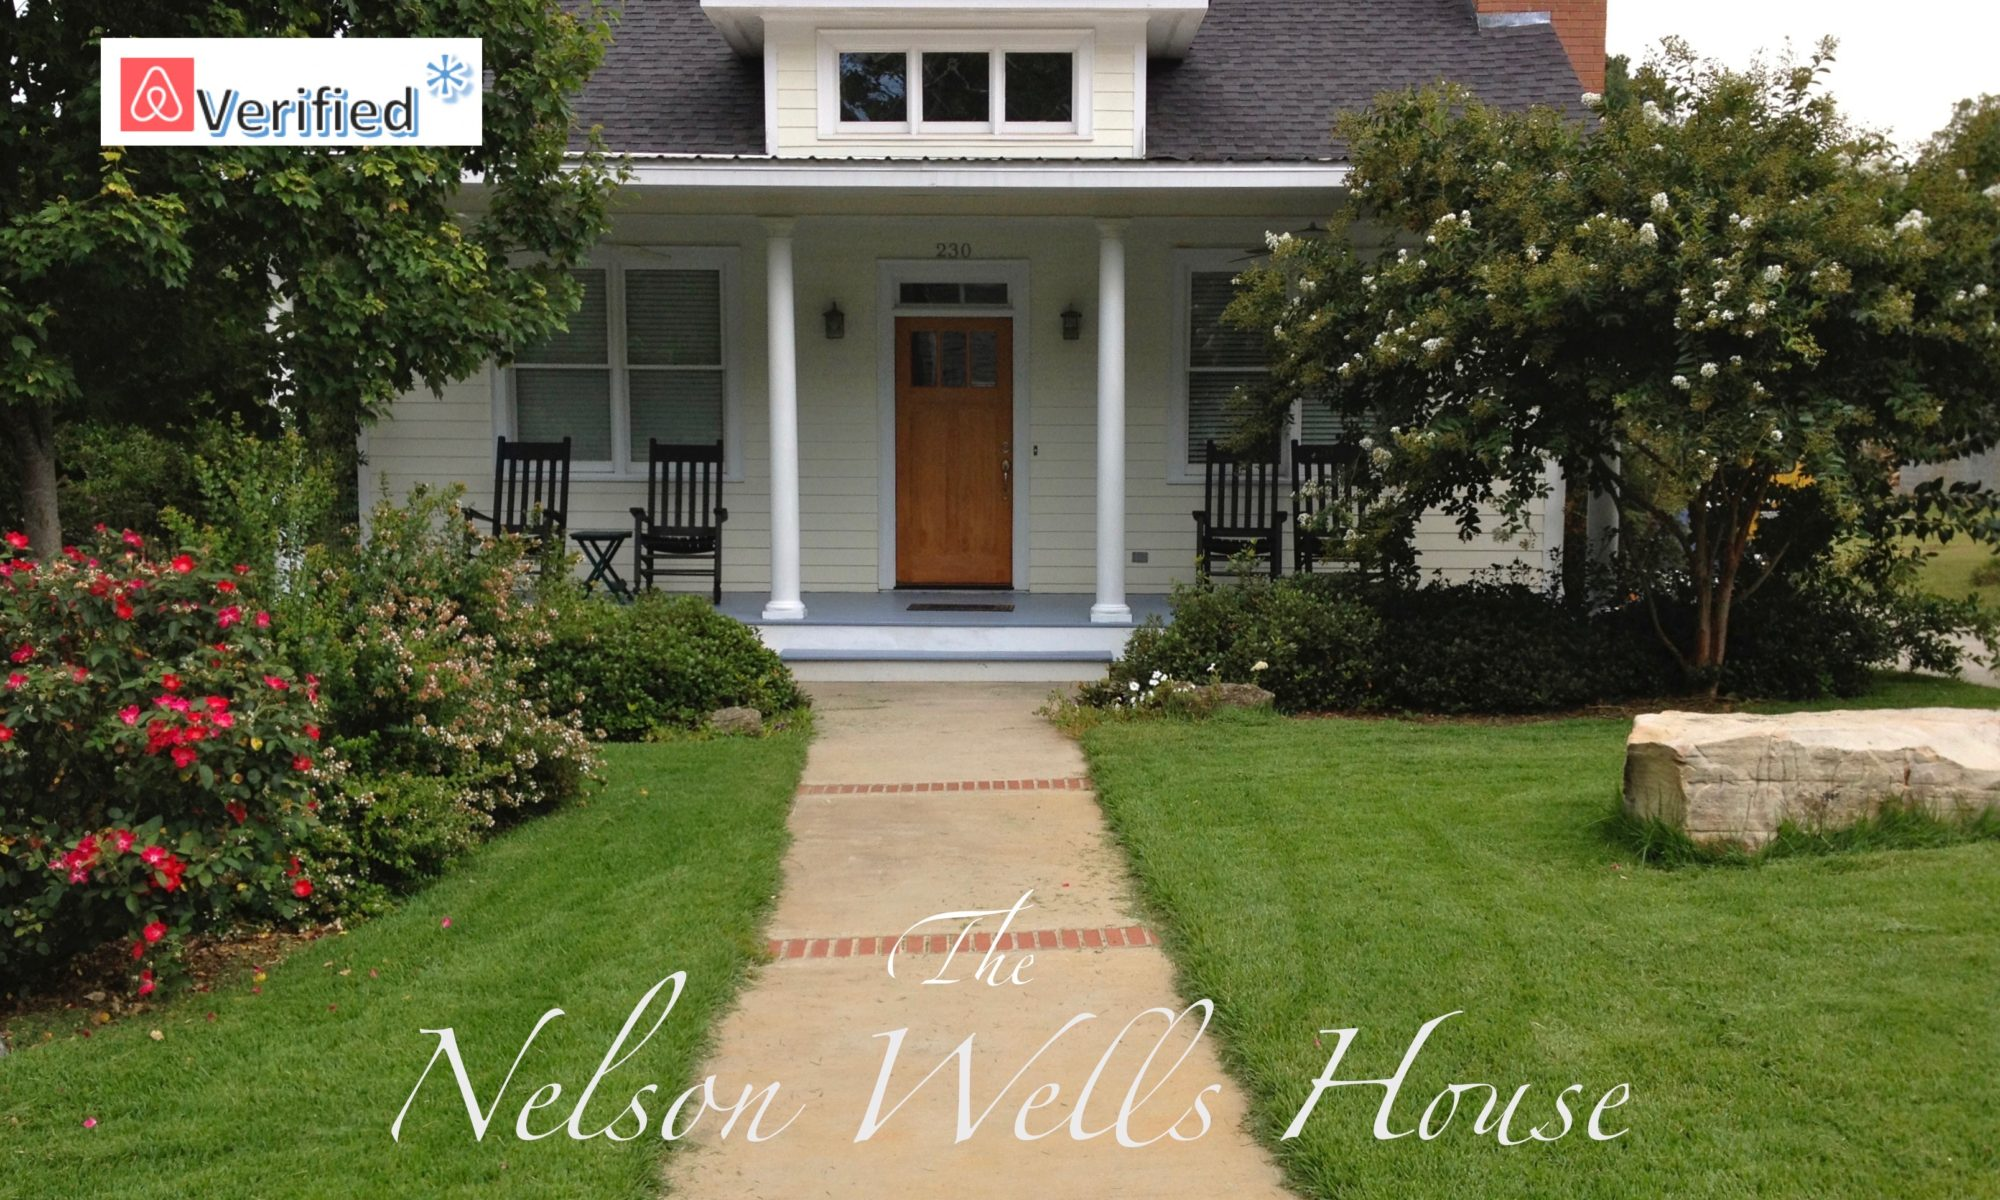 Nelson_Wells AirBnB Nelson wells team clermont athens georgia non-sexist photo